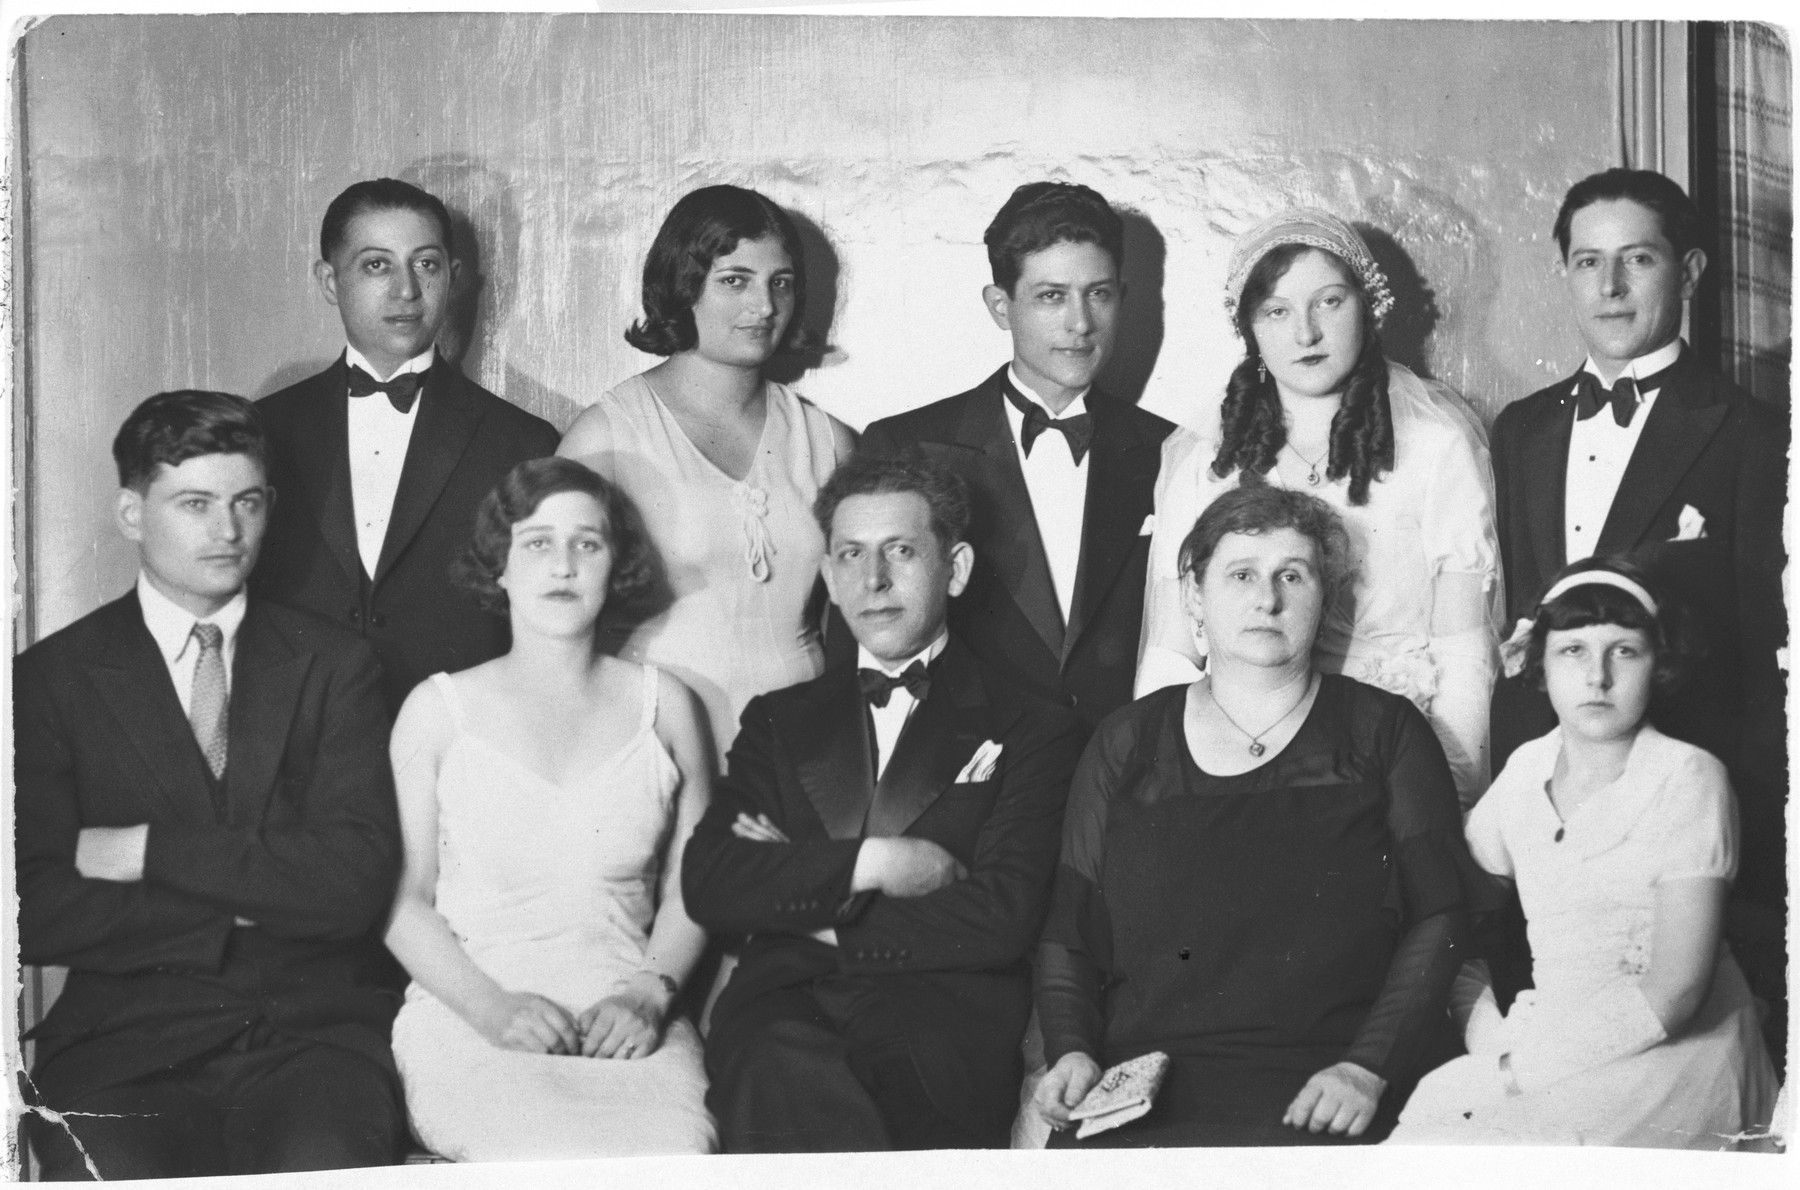 Wedding portrait of Bezalel Hershkovitz and Rosette Reisman.  Seated left to right are Izhak Amitai, Ray Hershkovitz, Koppel Grunbaum, Sarah Welner-Reisman-Grunbaum, Suzanne Reisman,  Standing are Harry Hershkovitz, Esther Amitai, Bezalel Hershkovitz, Rosette Hershkovitz and Gavriel Hershkovitz.